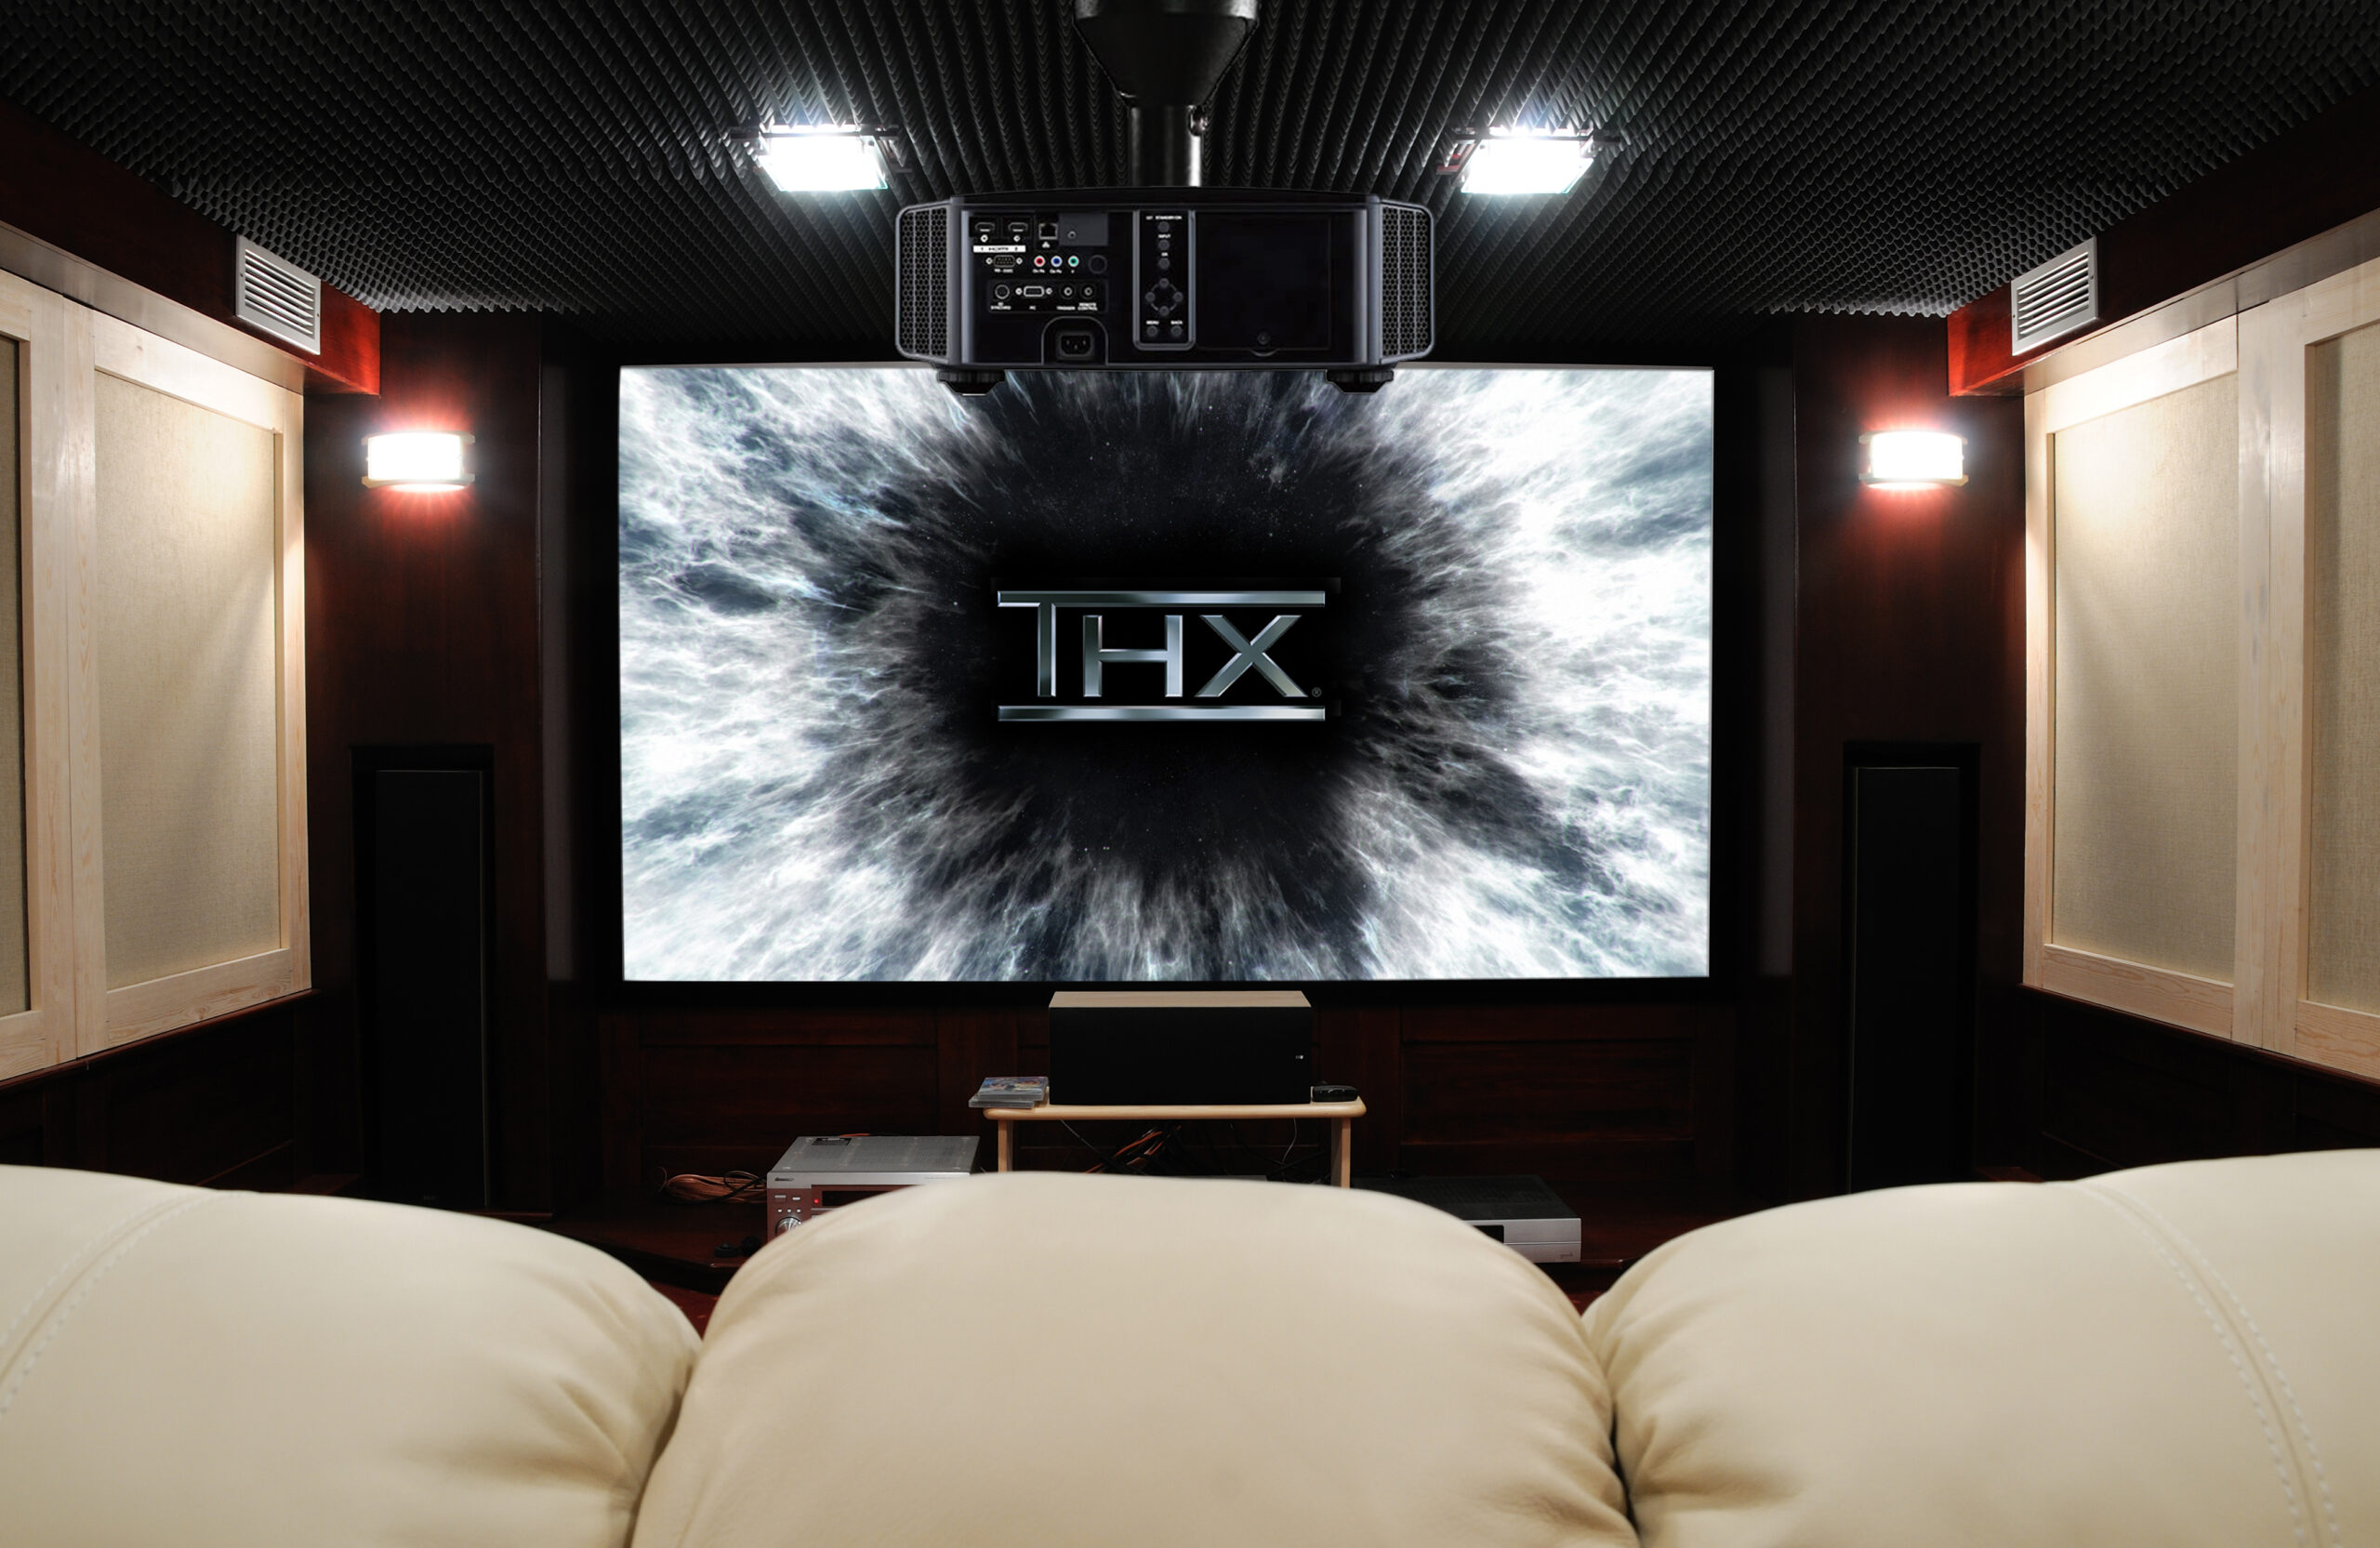 Certified by THX Home Theater